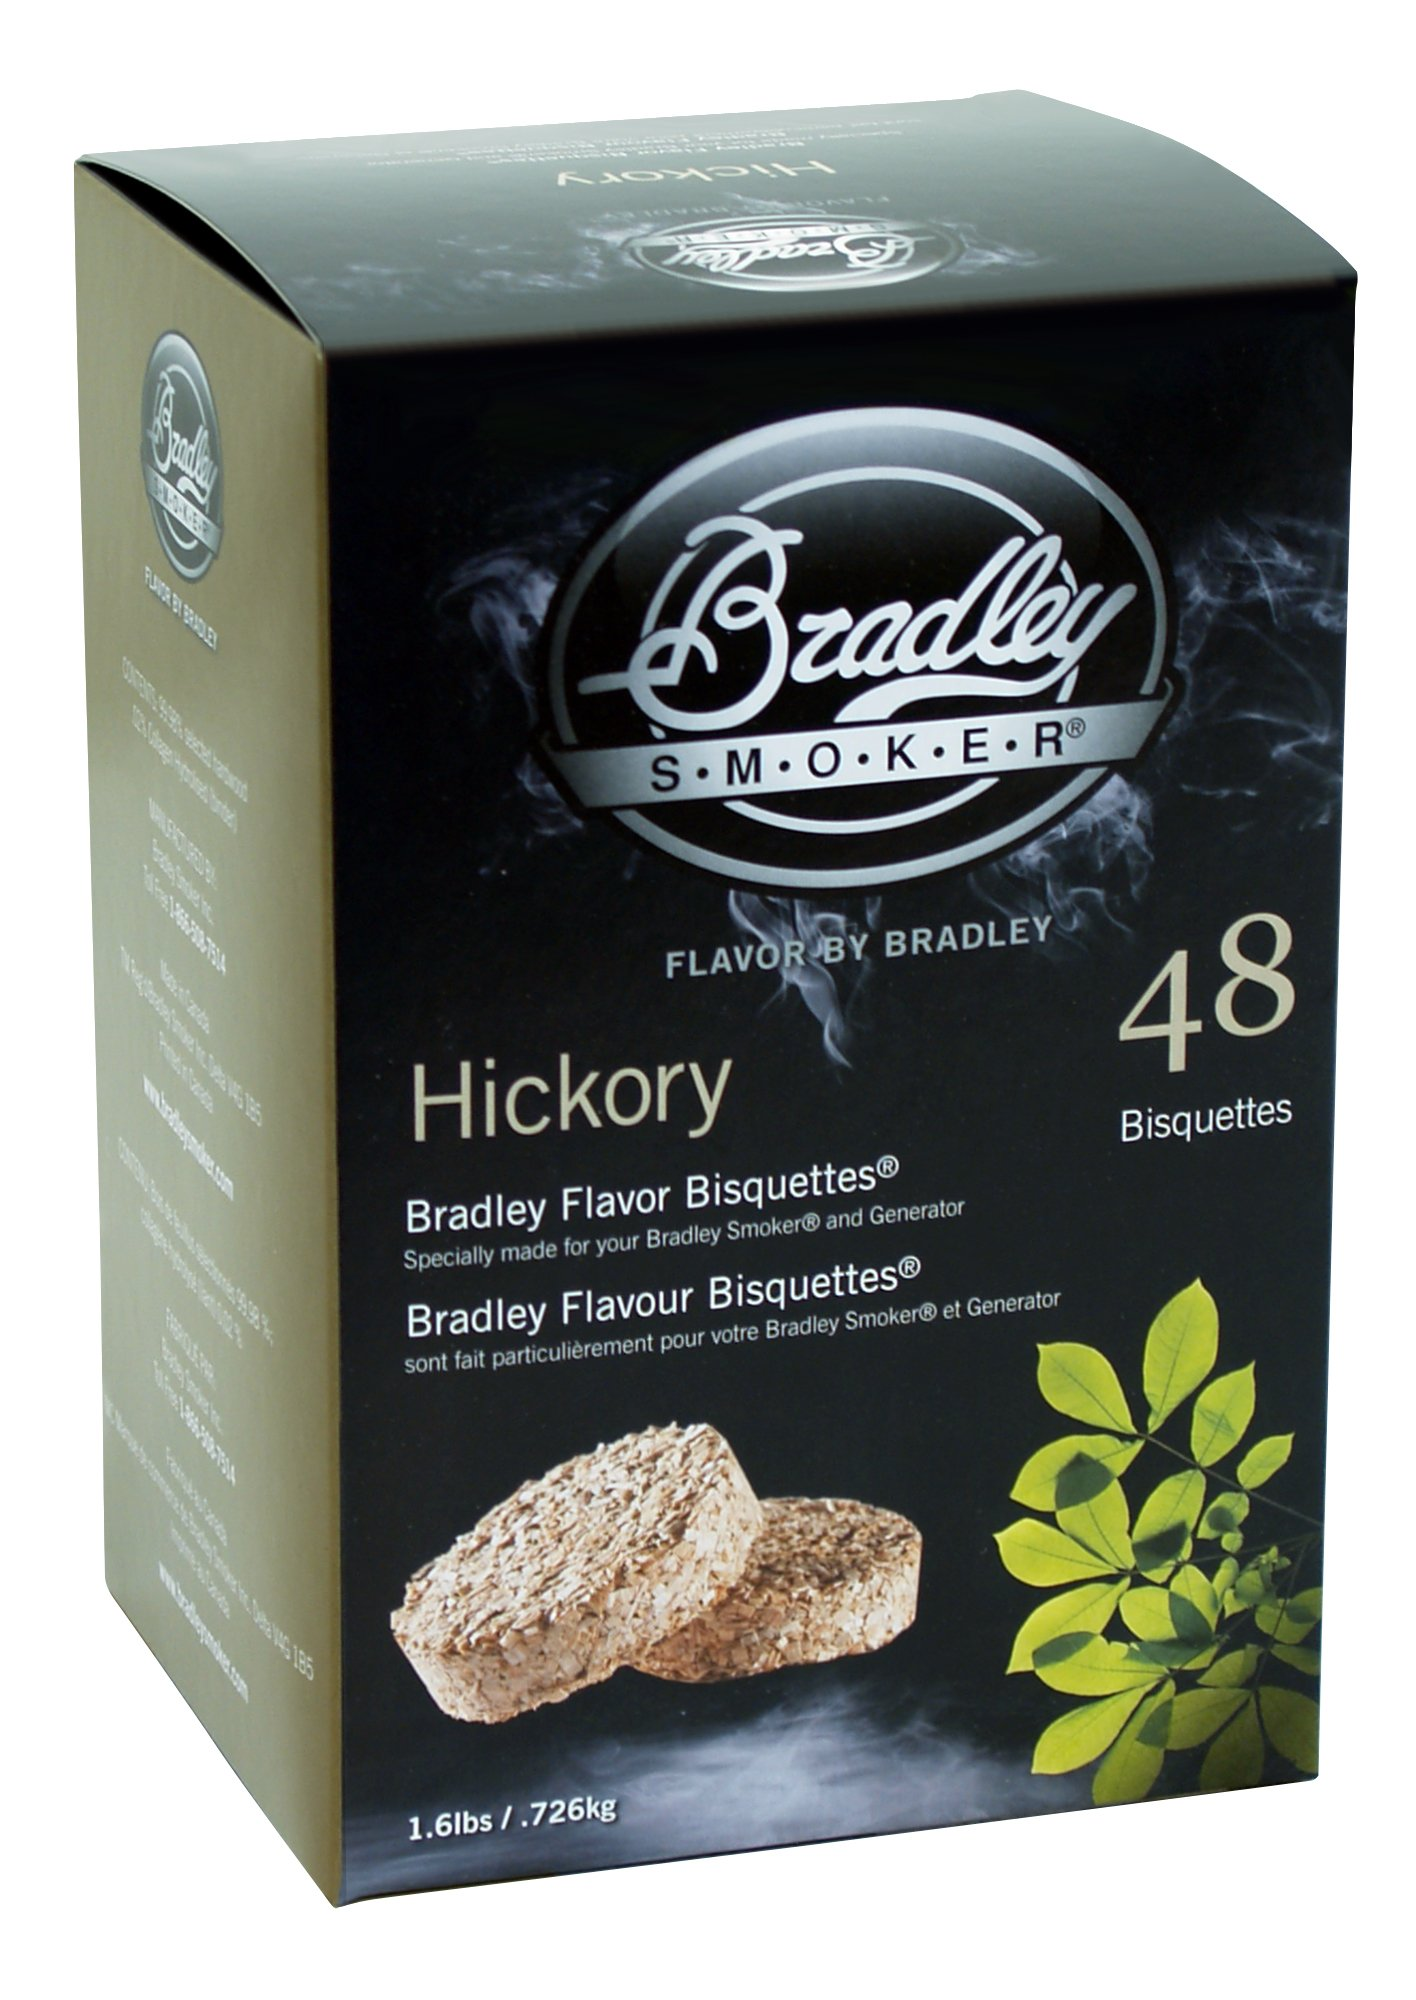 Bradley Hickory Bisquettes 1.6lb 48 pack by Bradley Smoker